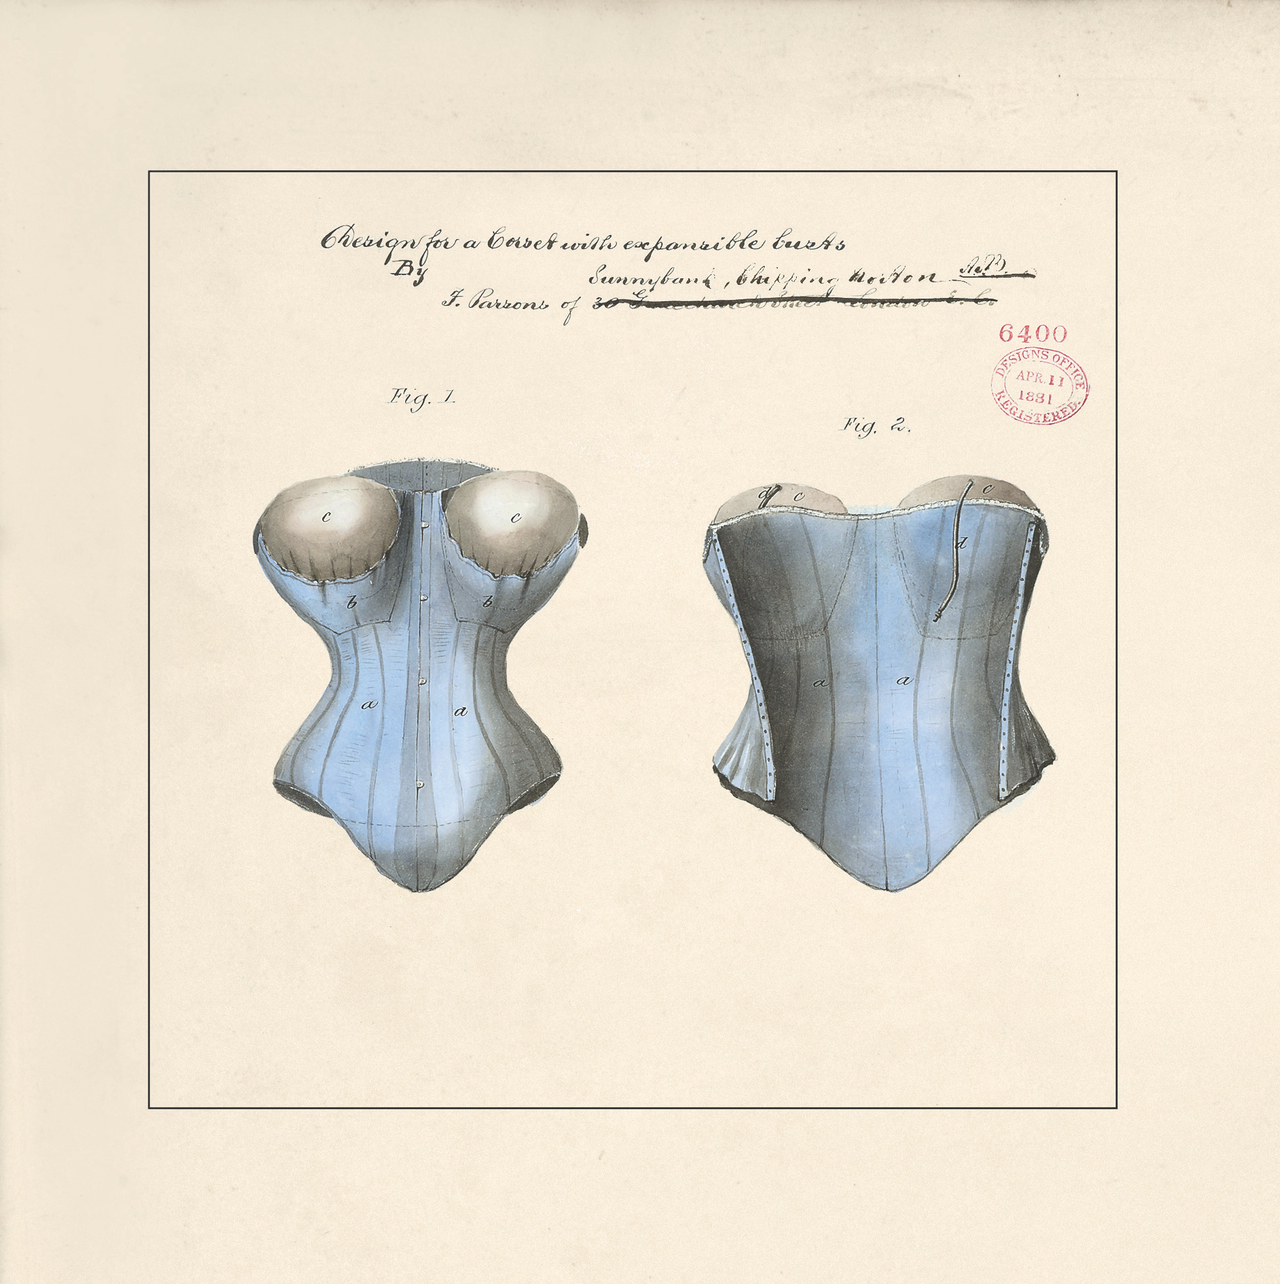 Design for a corset with expandable busts by F. Parsons, 1881 (BT 45/30) (The National Archives, London, England 2014. © 2014 Crown Copyright)